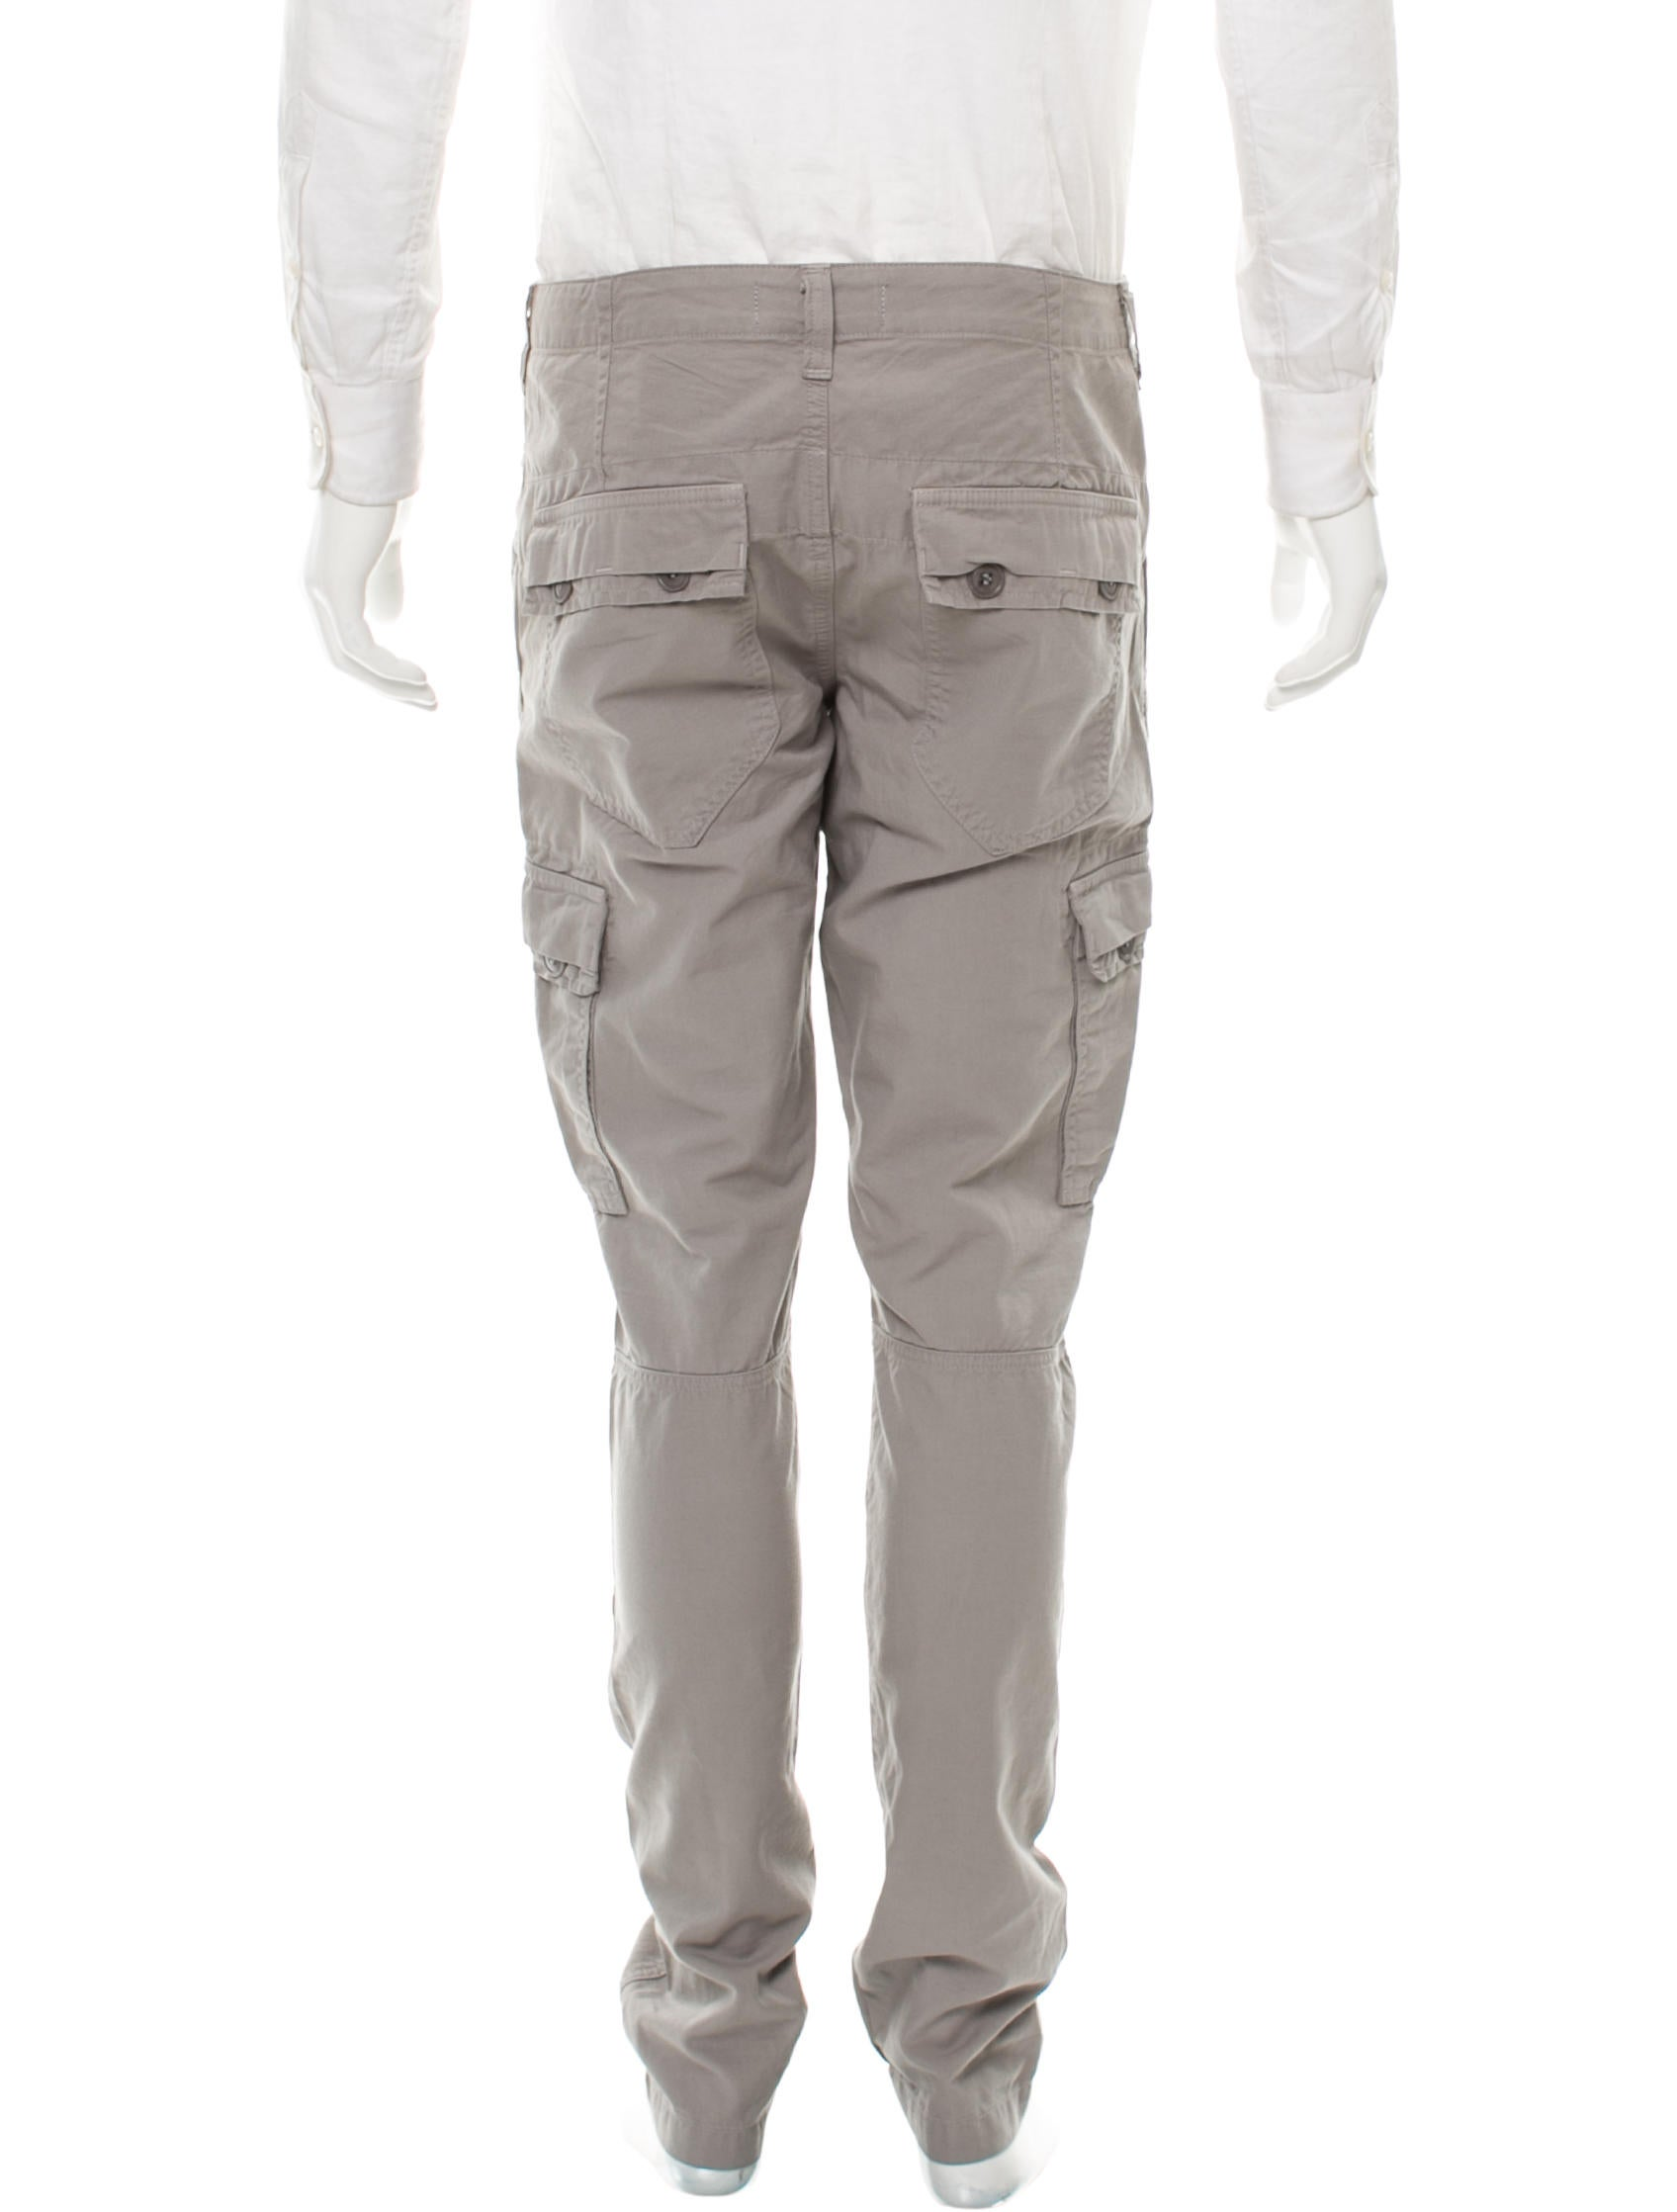 Get the best deals on slim cargo pants and save up to 70% off at Poshmark now! Whatever you're shopping for, we've got it.